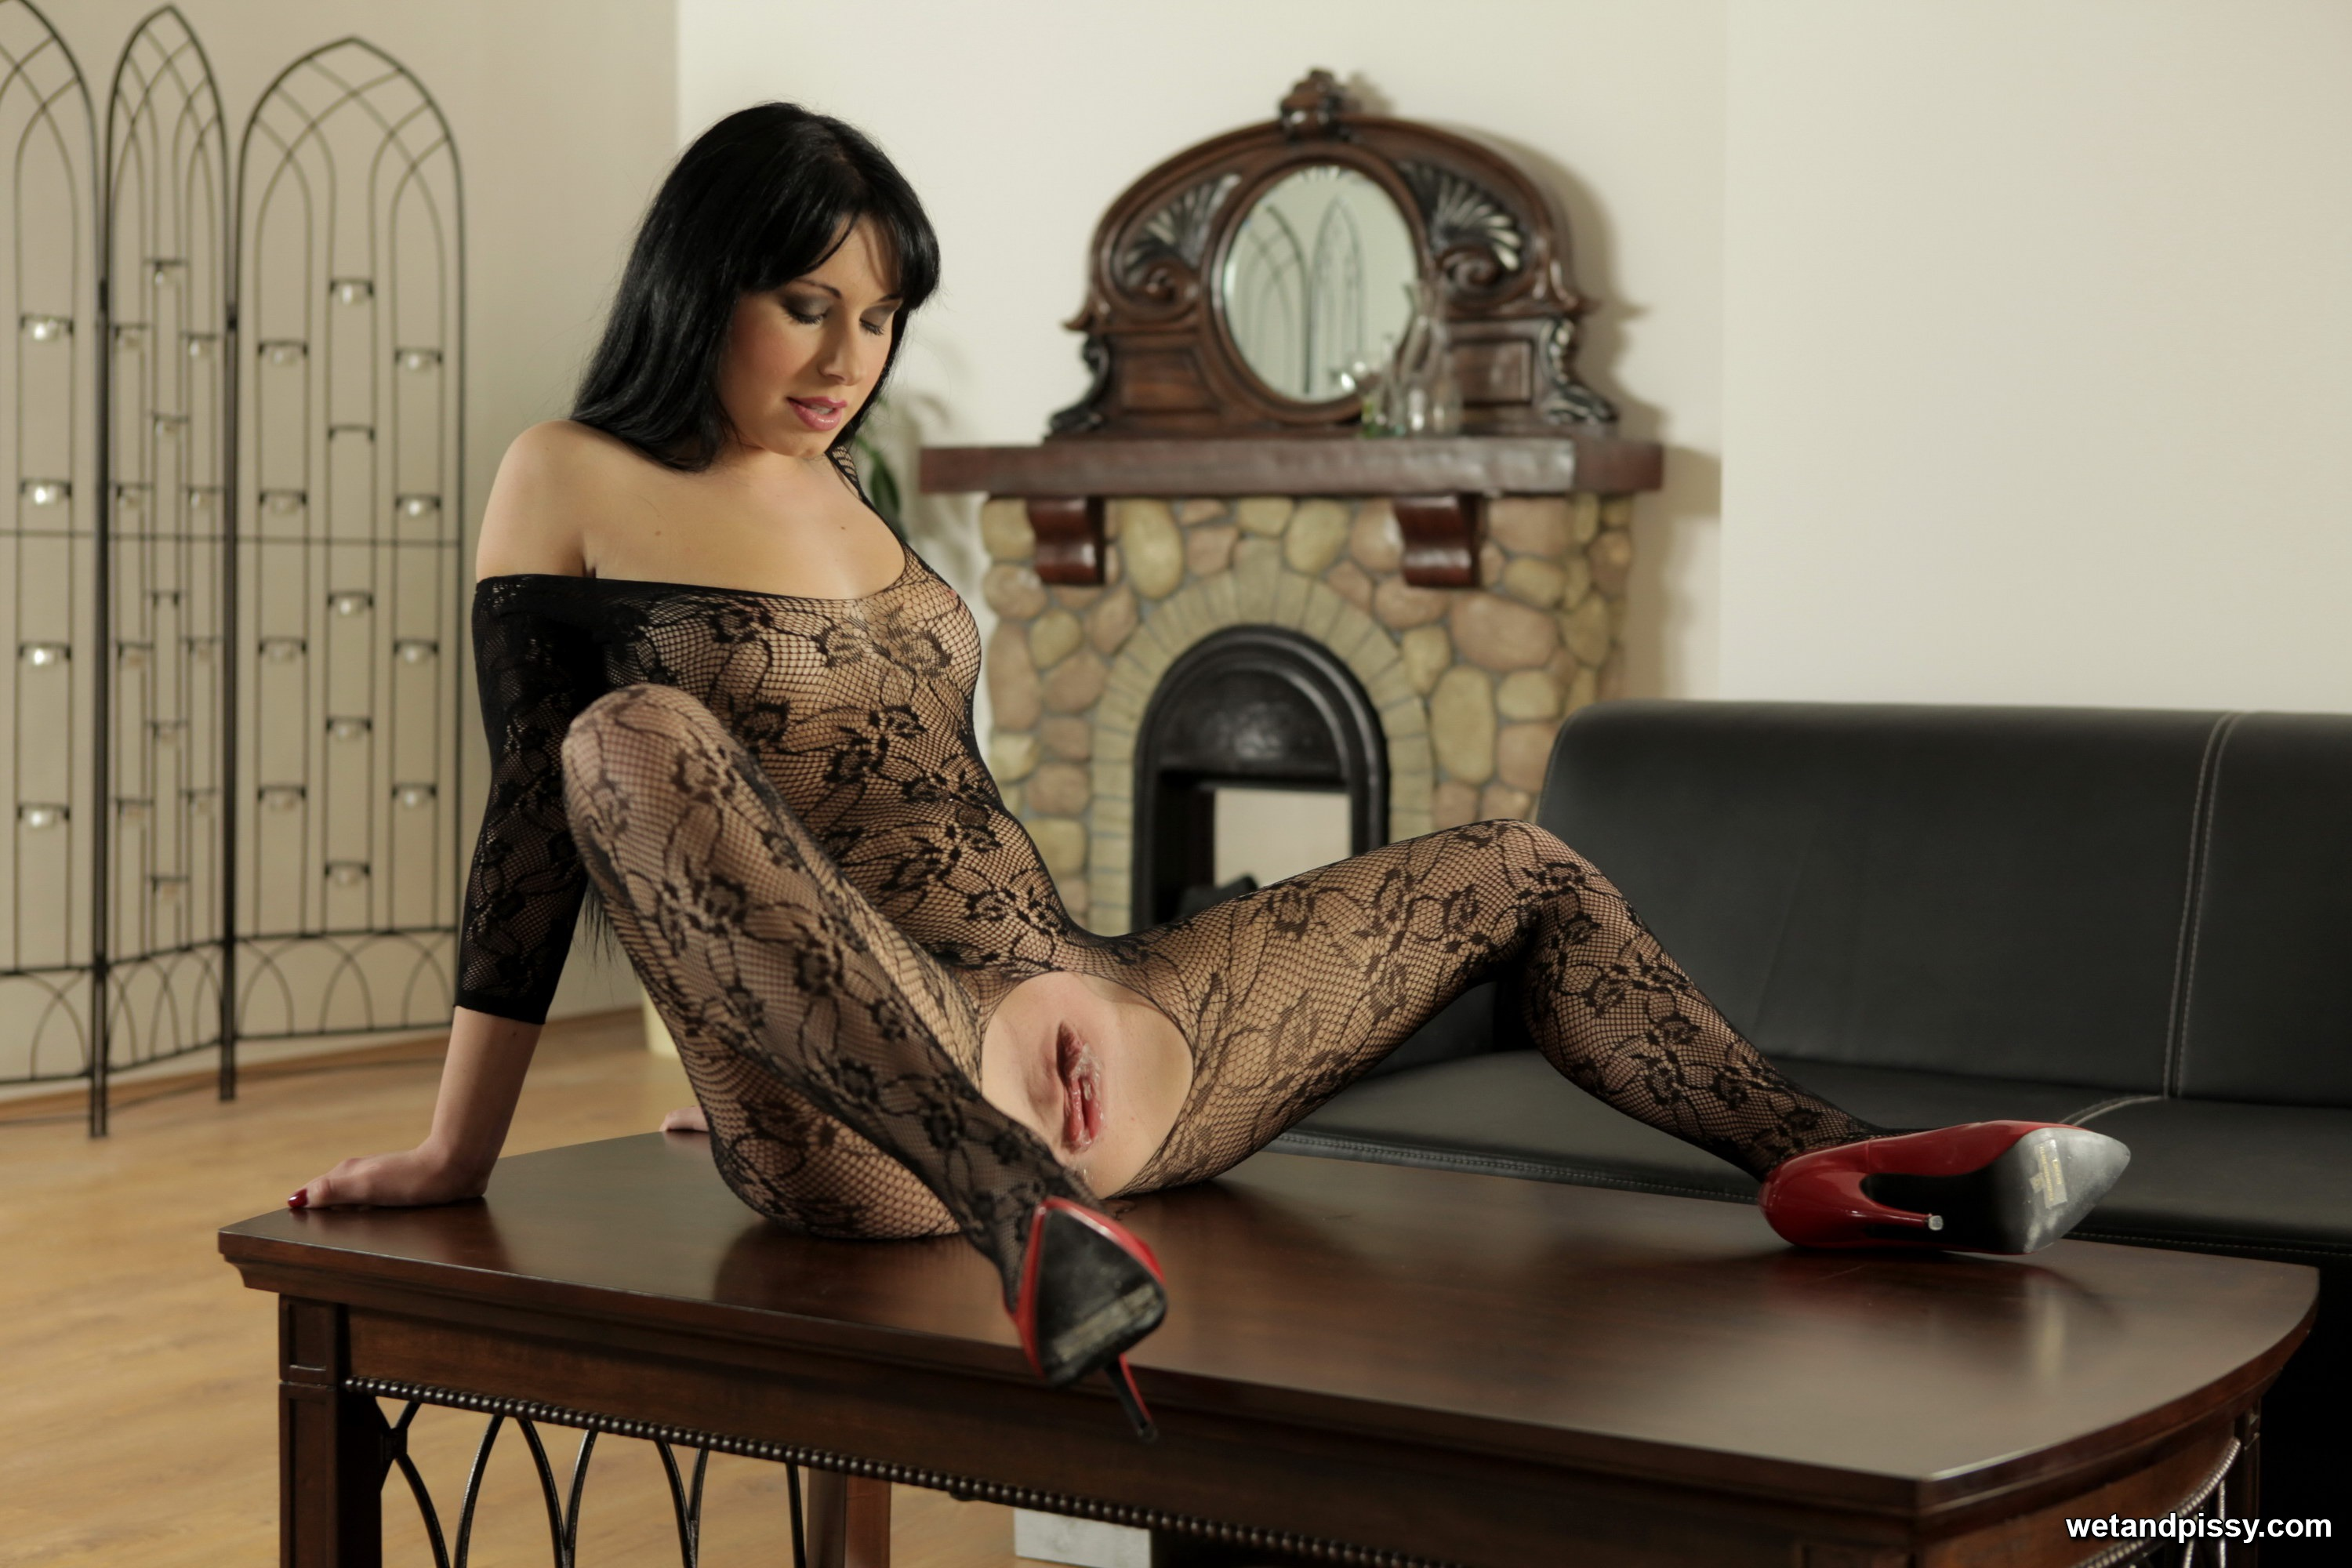 Raven haired beauty with long legs